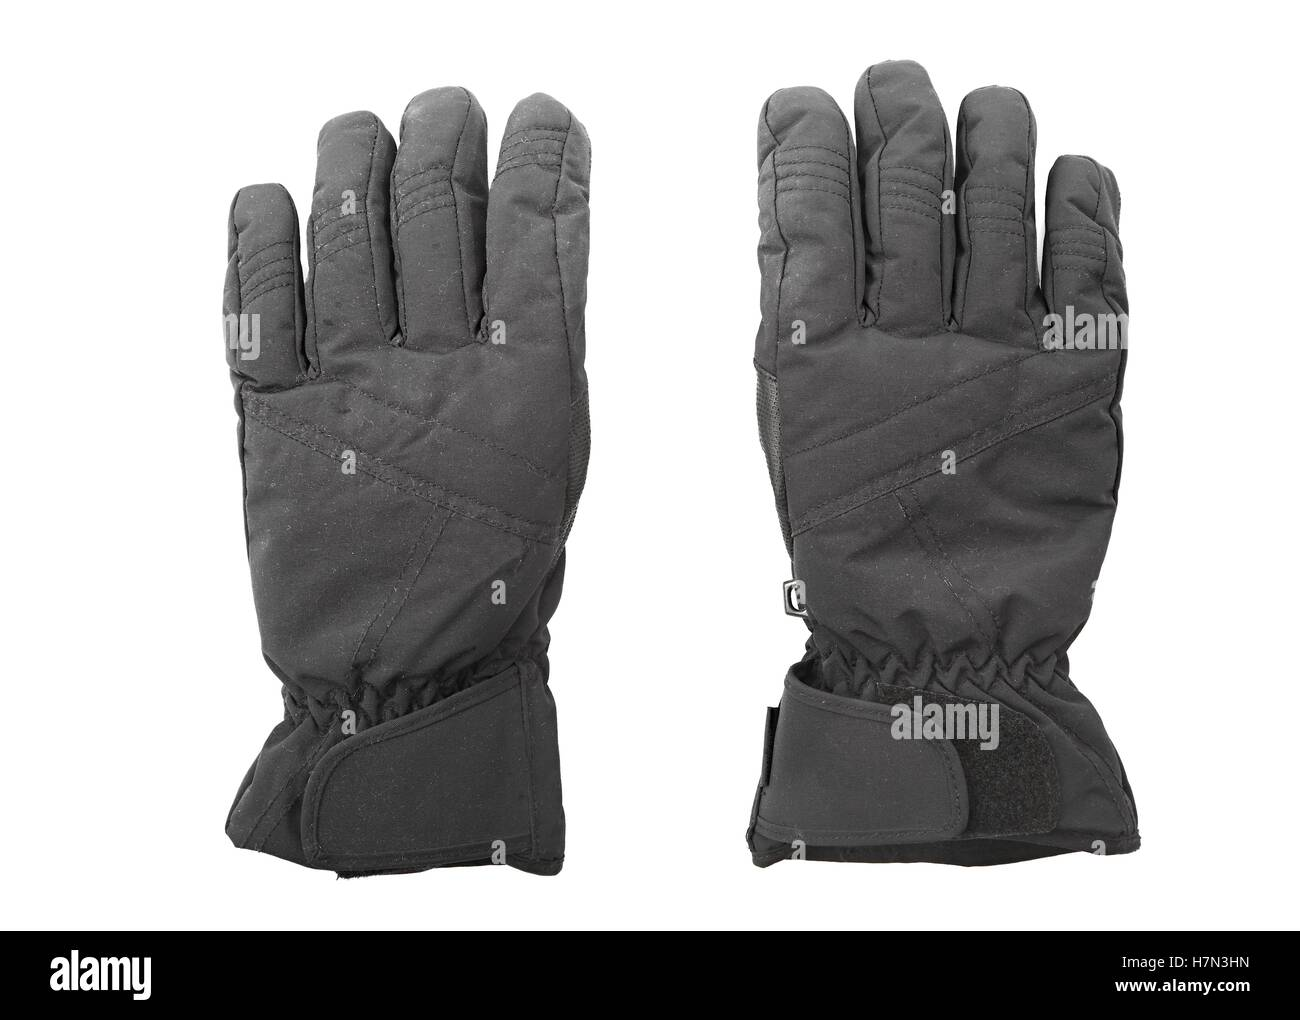 Gloves in pair - Stock Image